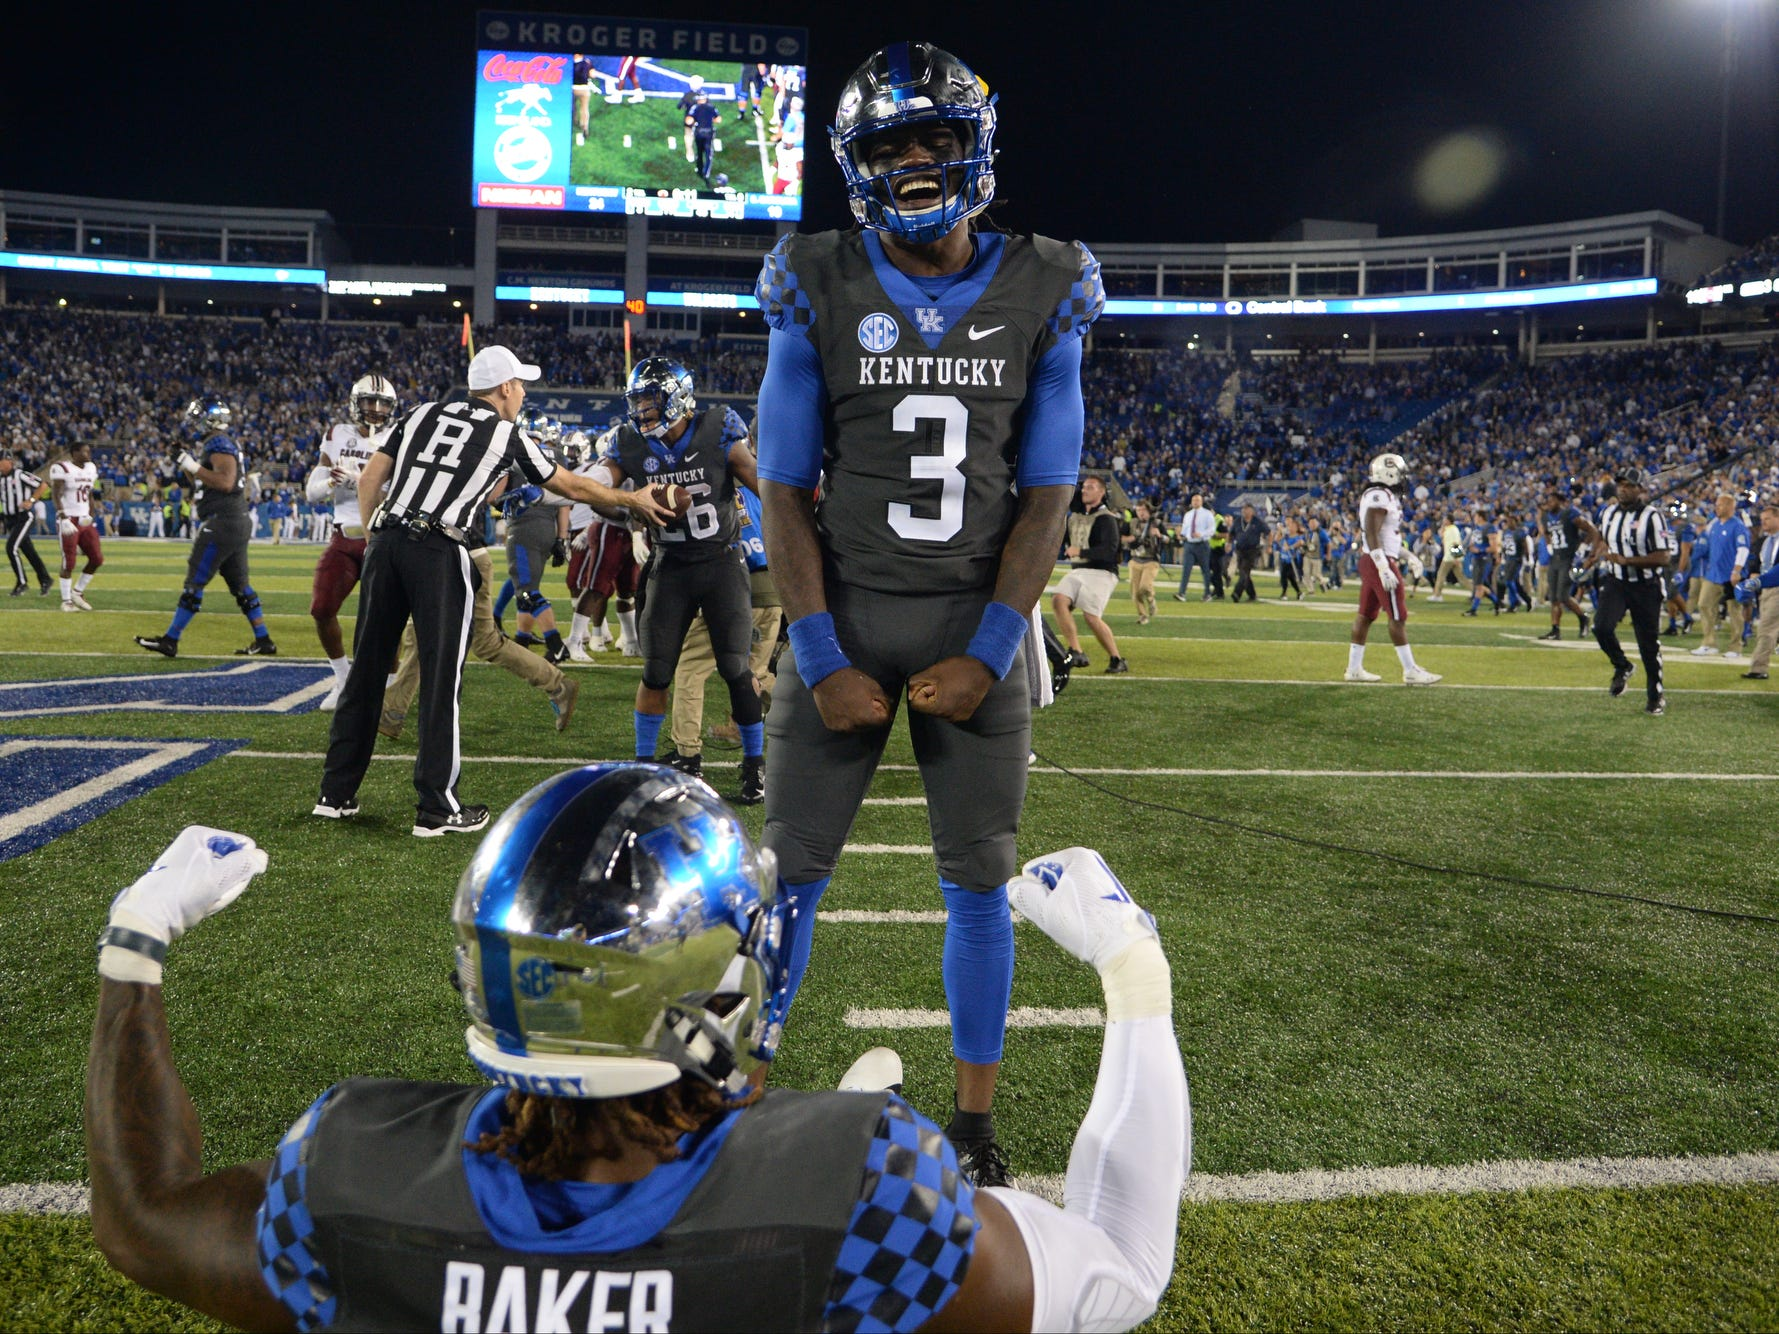 UK QB Terry Wilson celebrates with WR Dorian Baker after winning the University of Kentucky football game against South Carolina at Kroger Field in Lexington, Kentucky on Saturday, September 29, 2018.